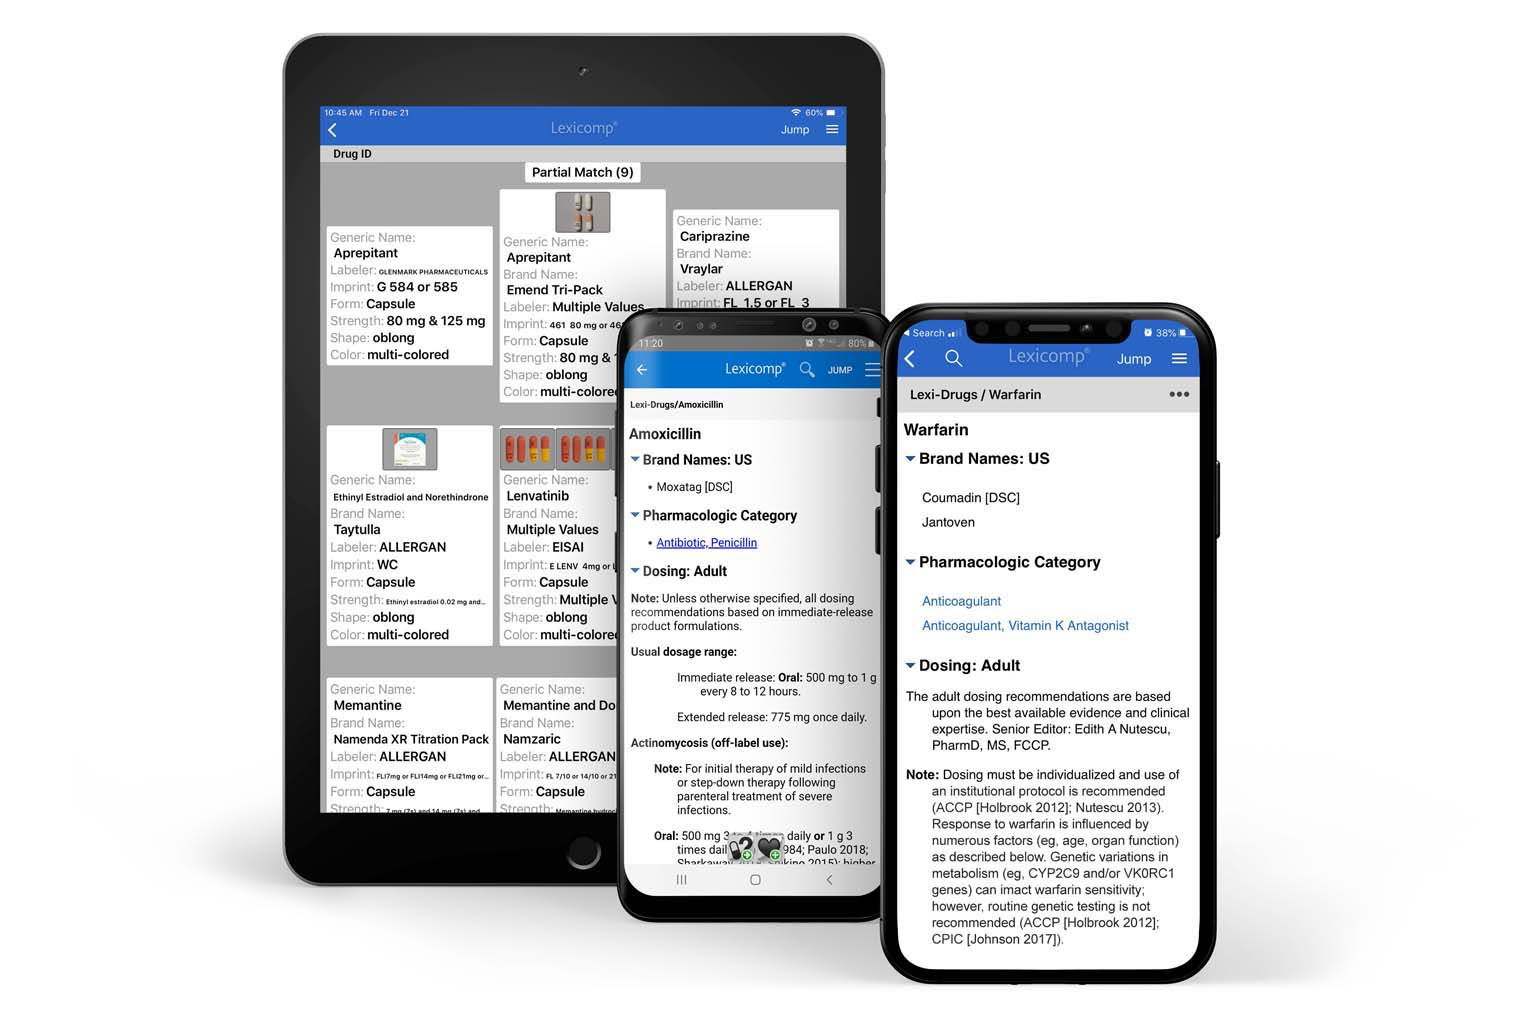 tablet and smartphones displaying Lexicomp